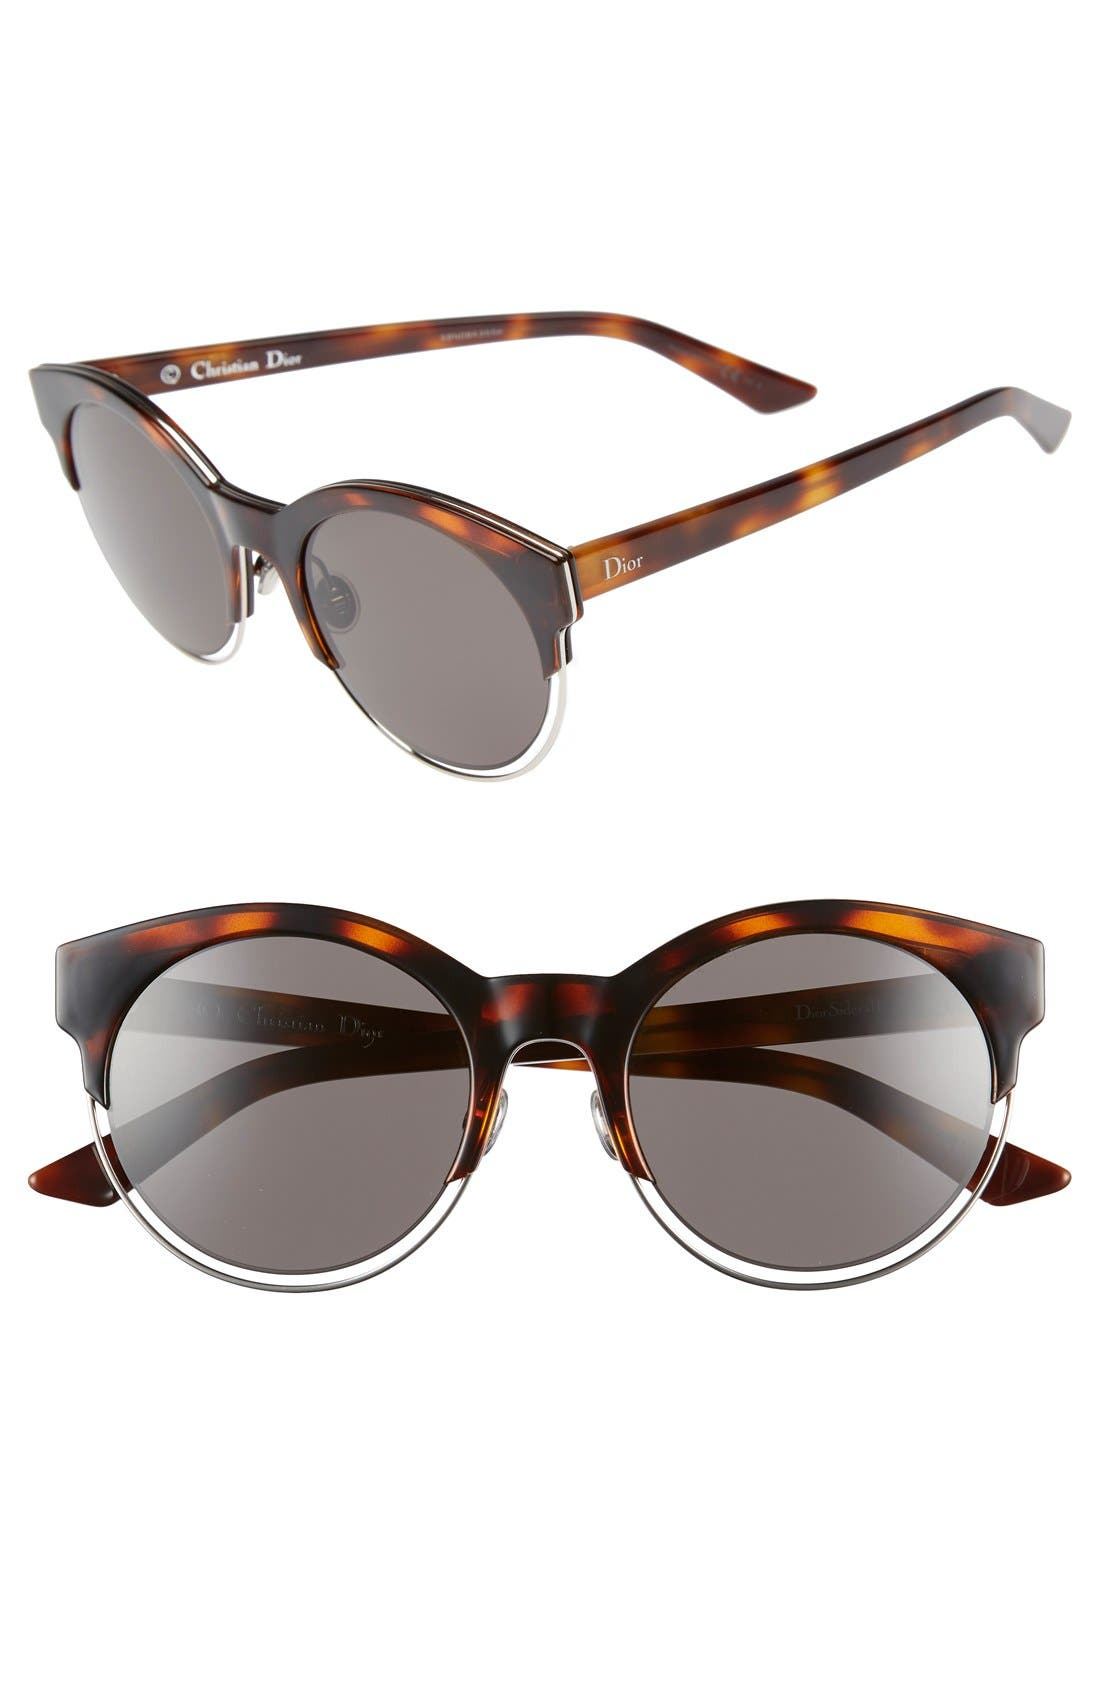 Siderall 1 53mm Round Sunglasses,                             Main thumbnail 4, color,